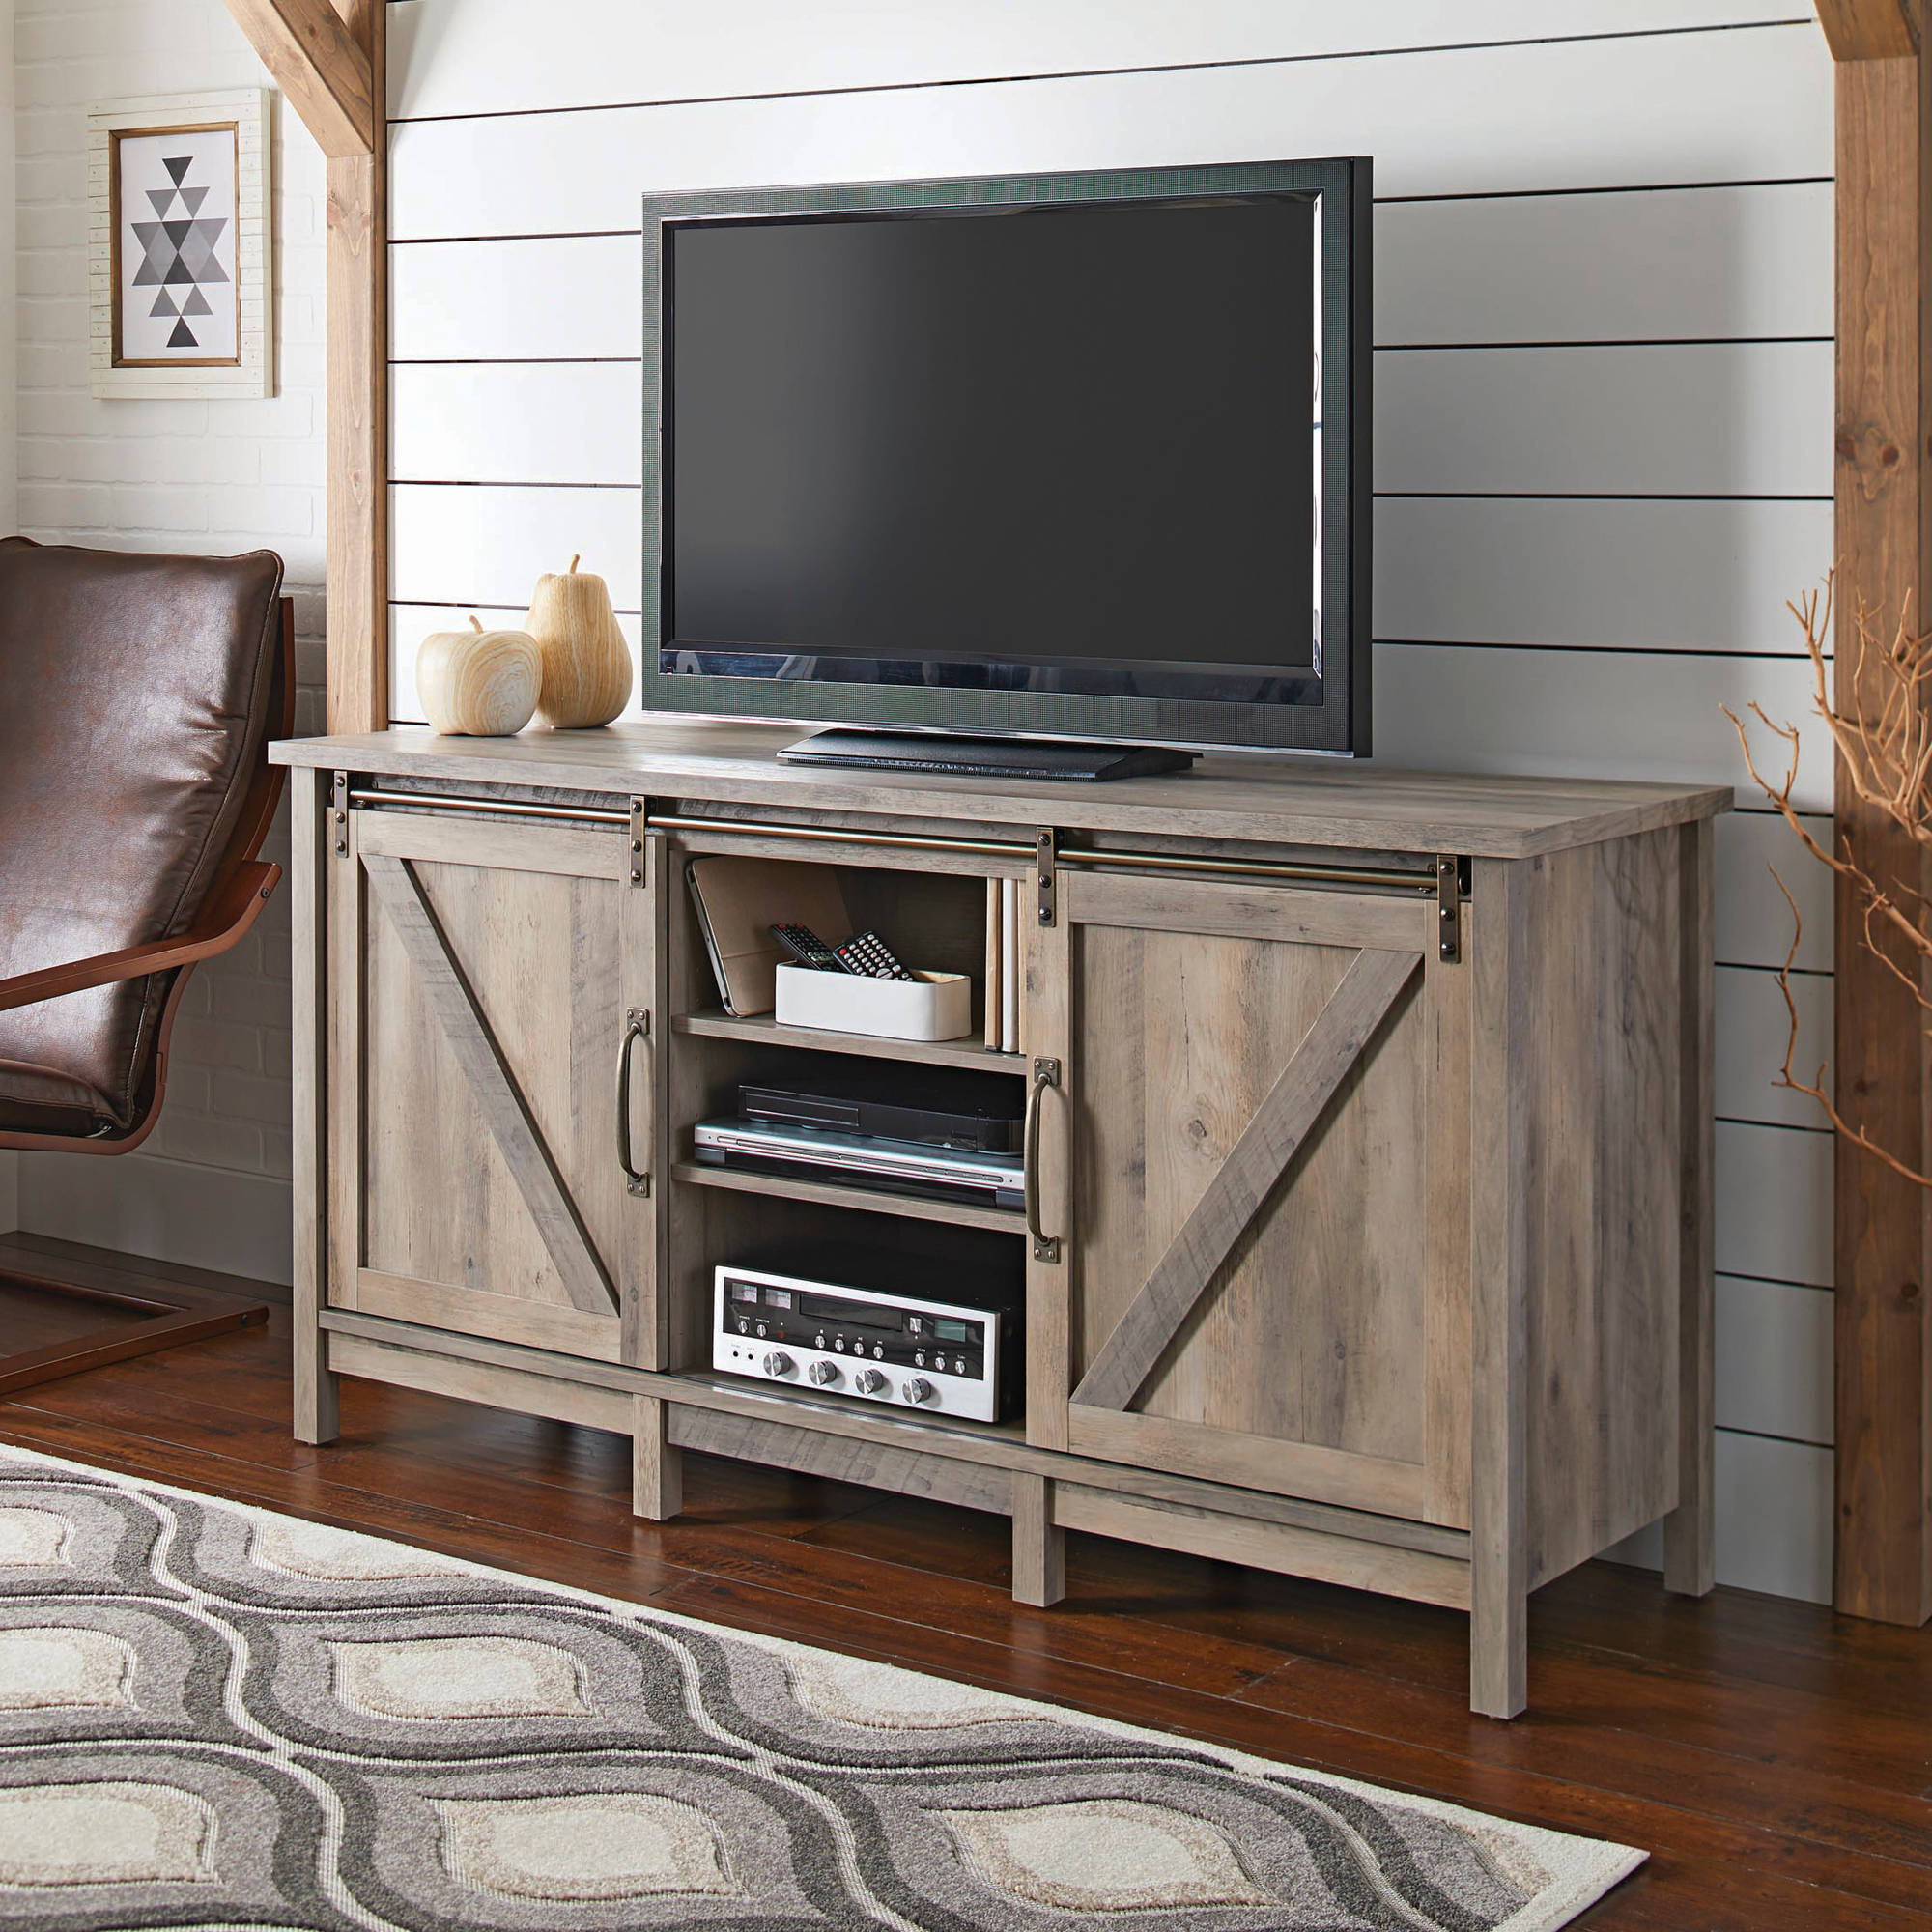 better homes gardens modern farmhouse tv stand for tvs up to 70 rustic gray finish walmart com